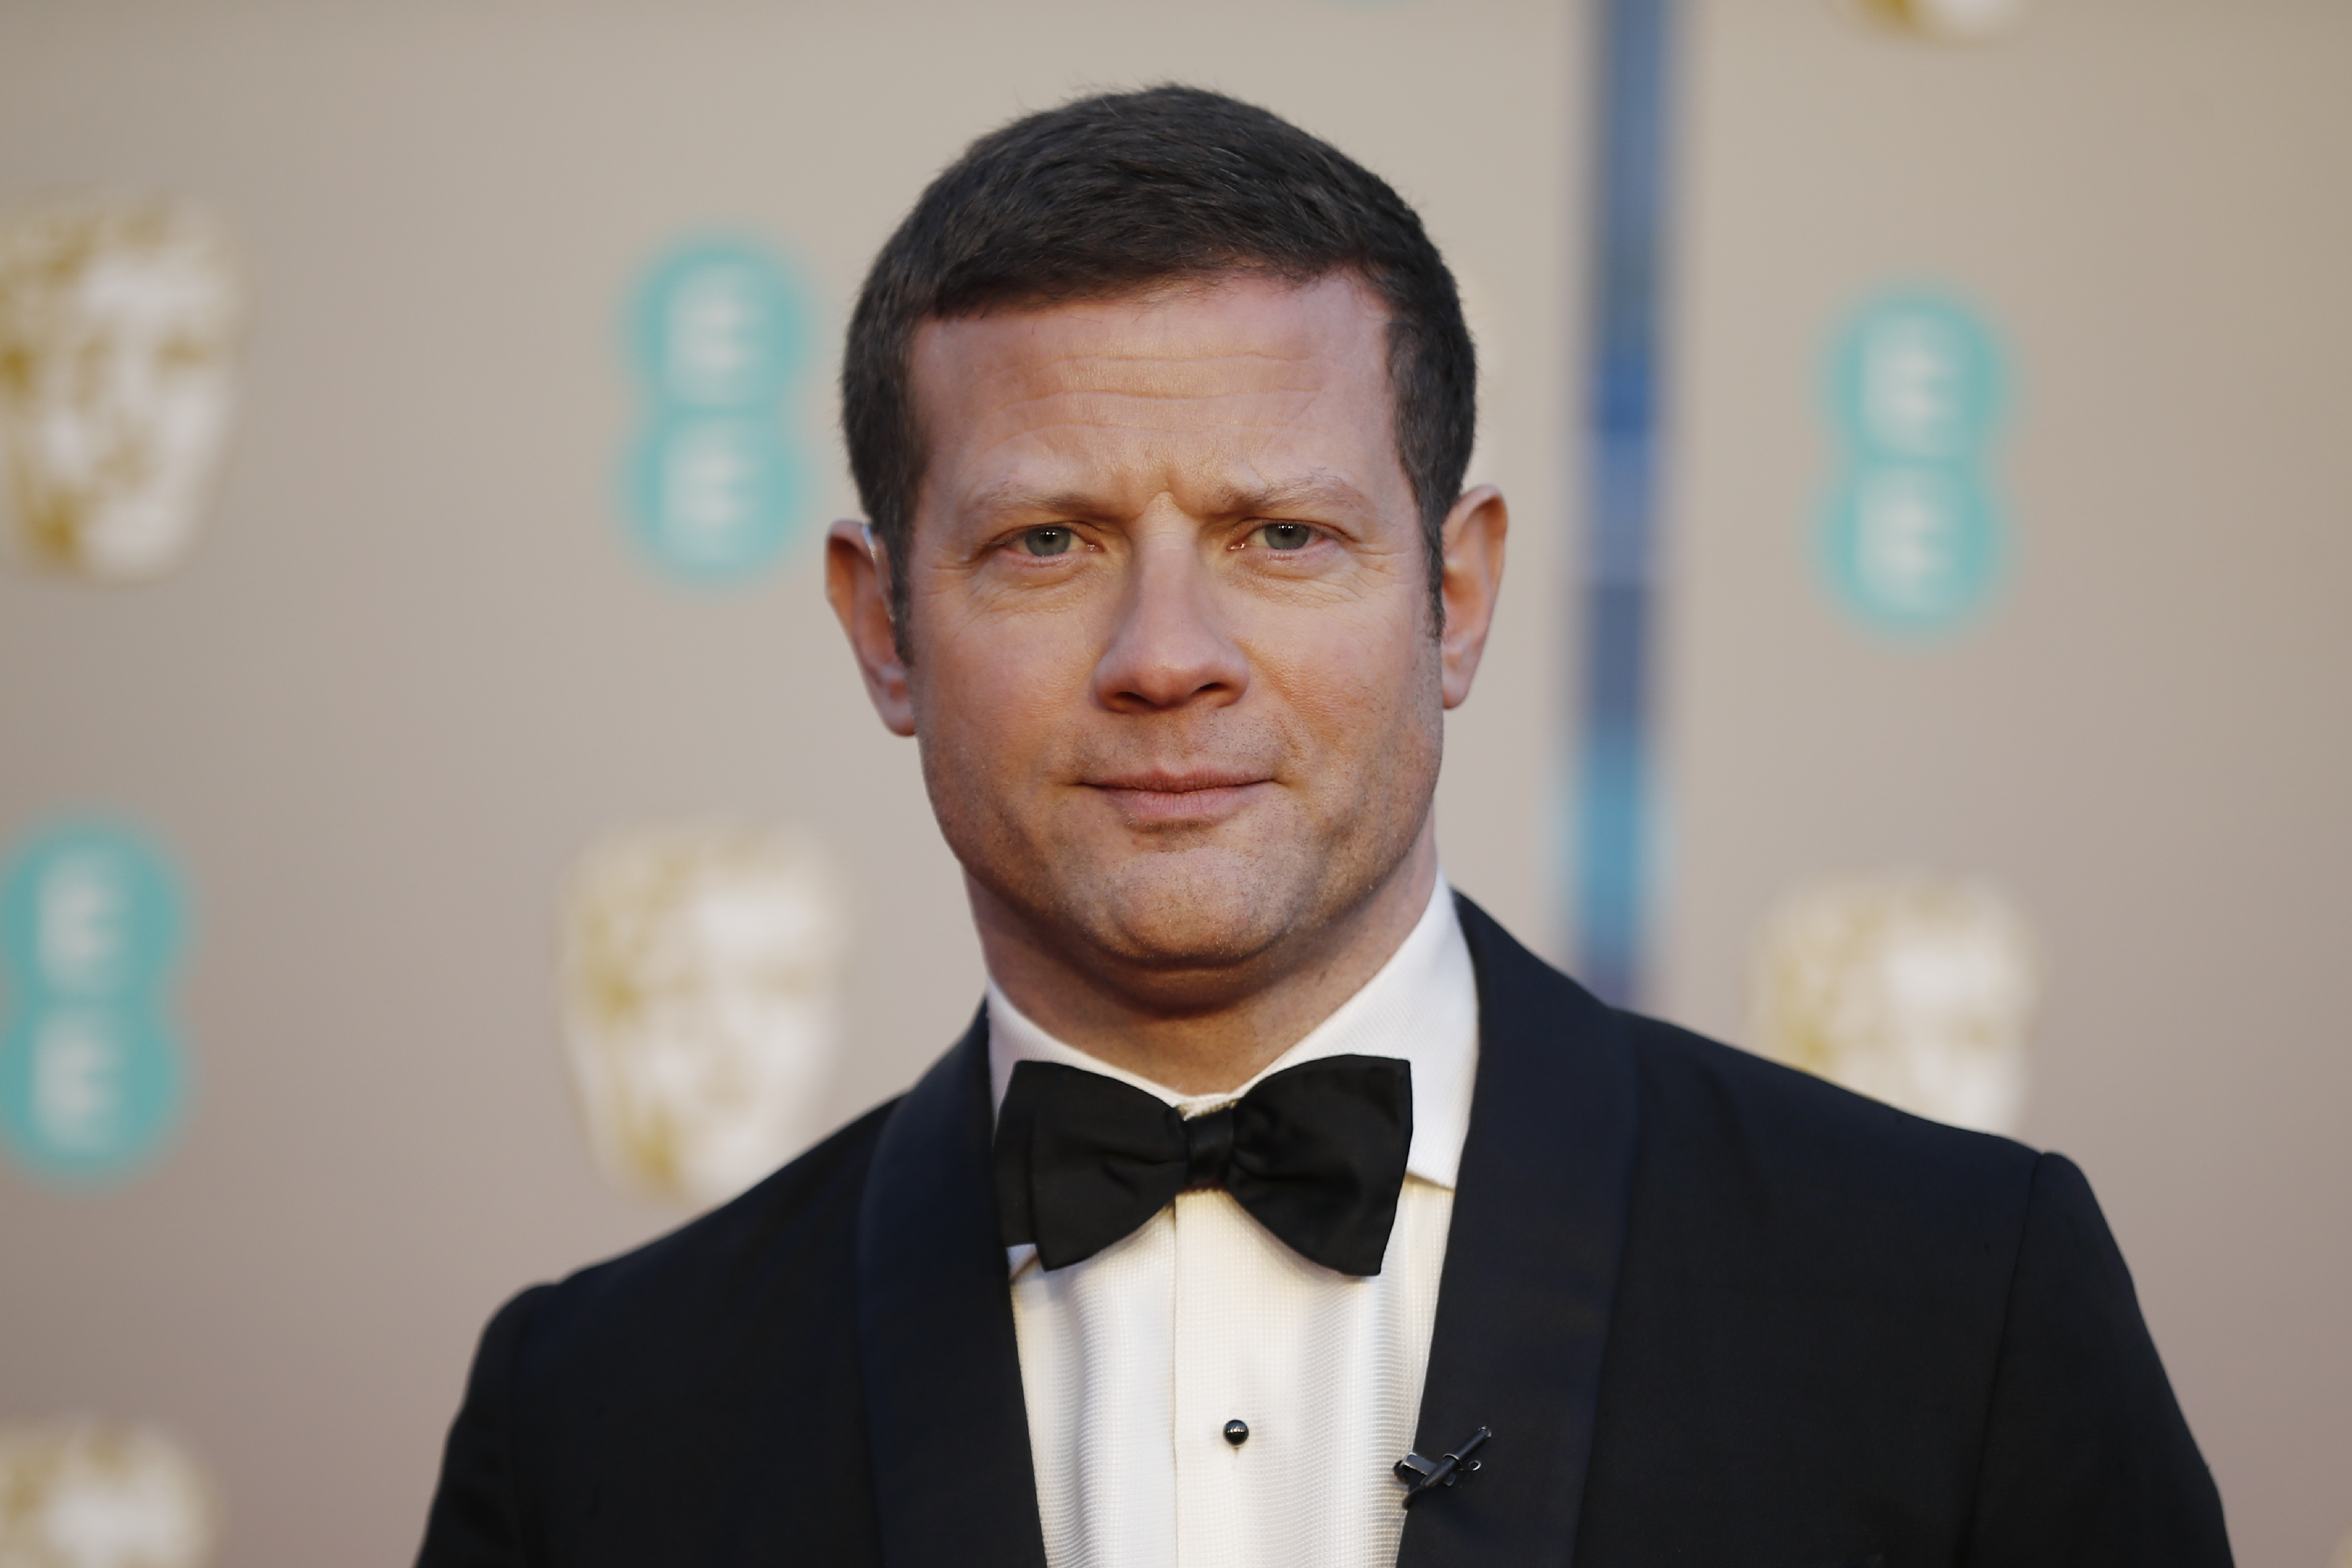 Presenter Dermot O'Leary poses on the red carpet upon arrival at the BAFTA British Academy Film Awards at the Royal Albert Hall in London on February 10, 2019. (Photo by Tolga AKMEN / AFP)        (Photo credit should read TOLGA AKMEN/AFP via Getty Images)